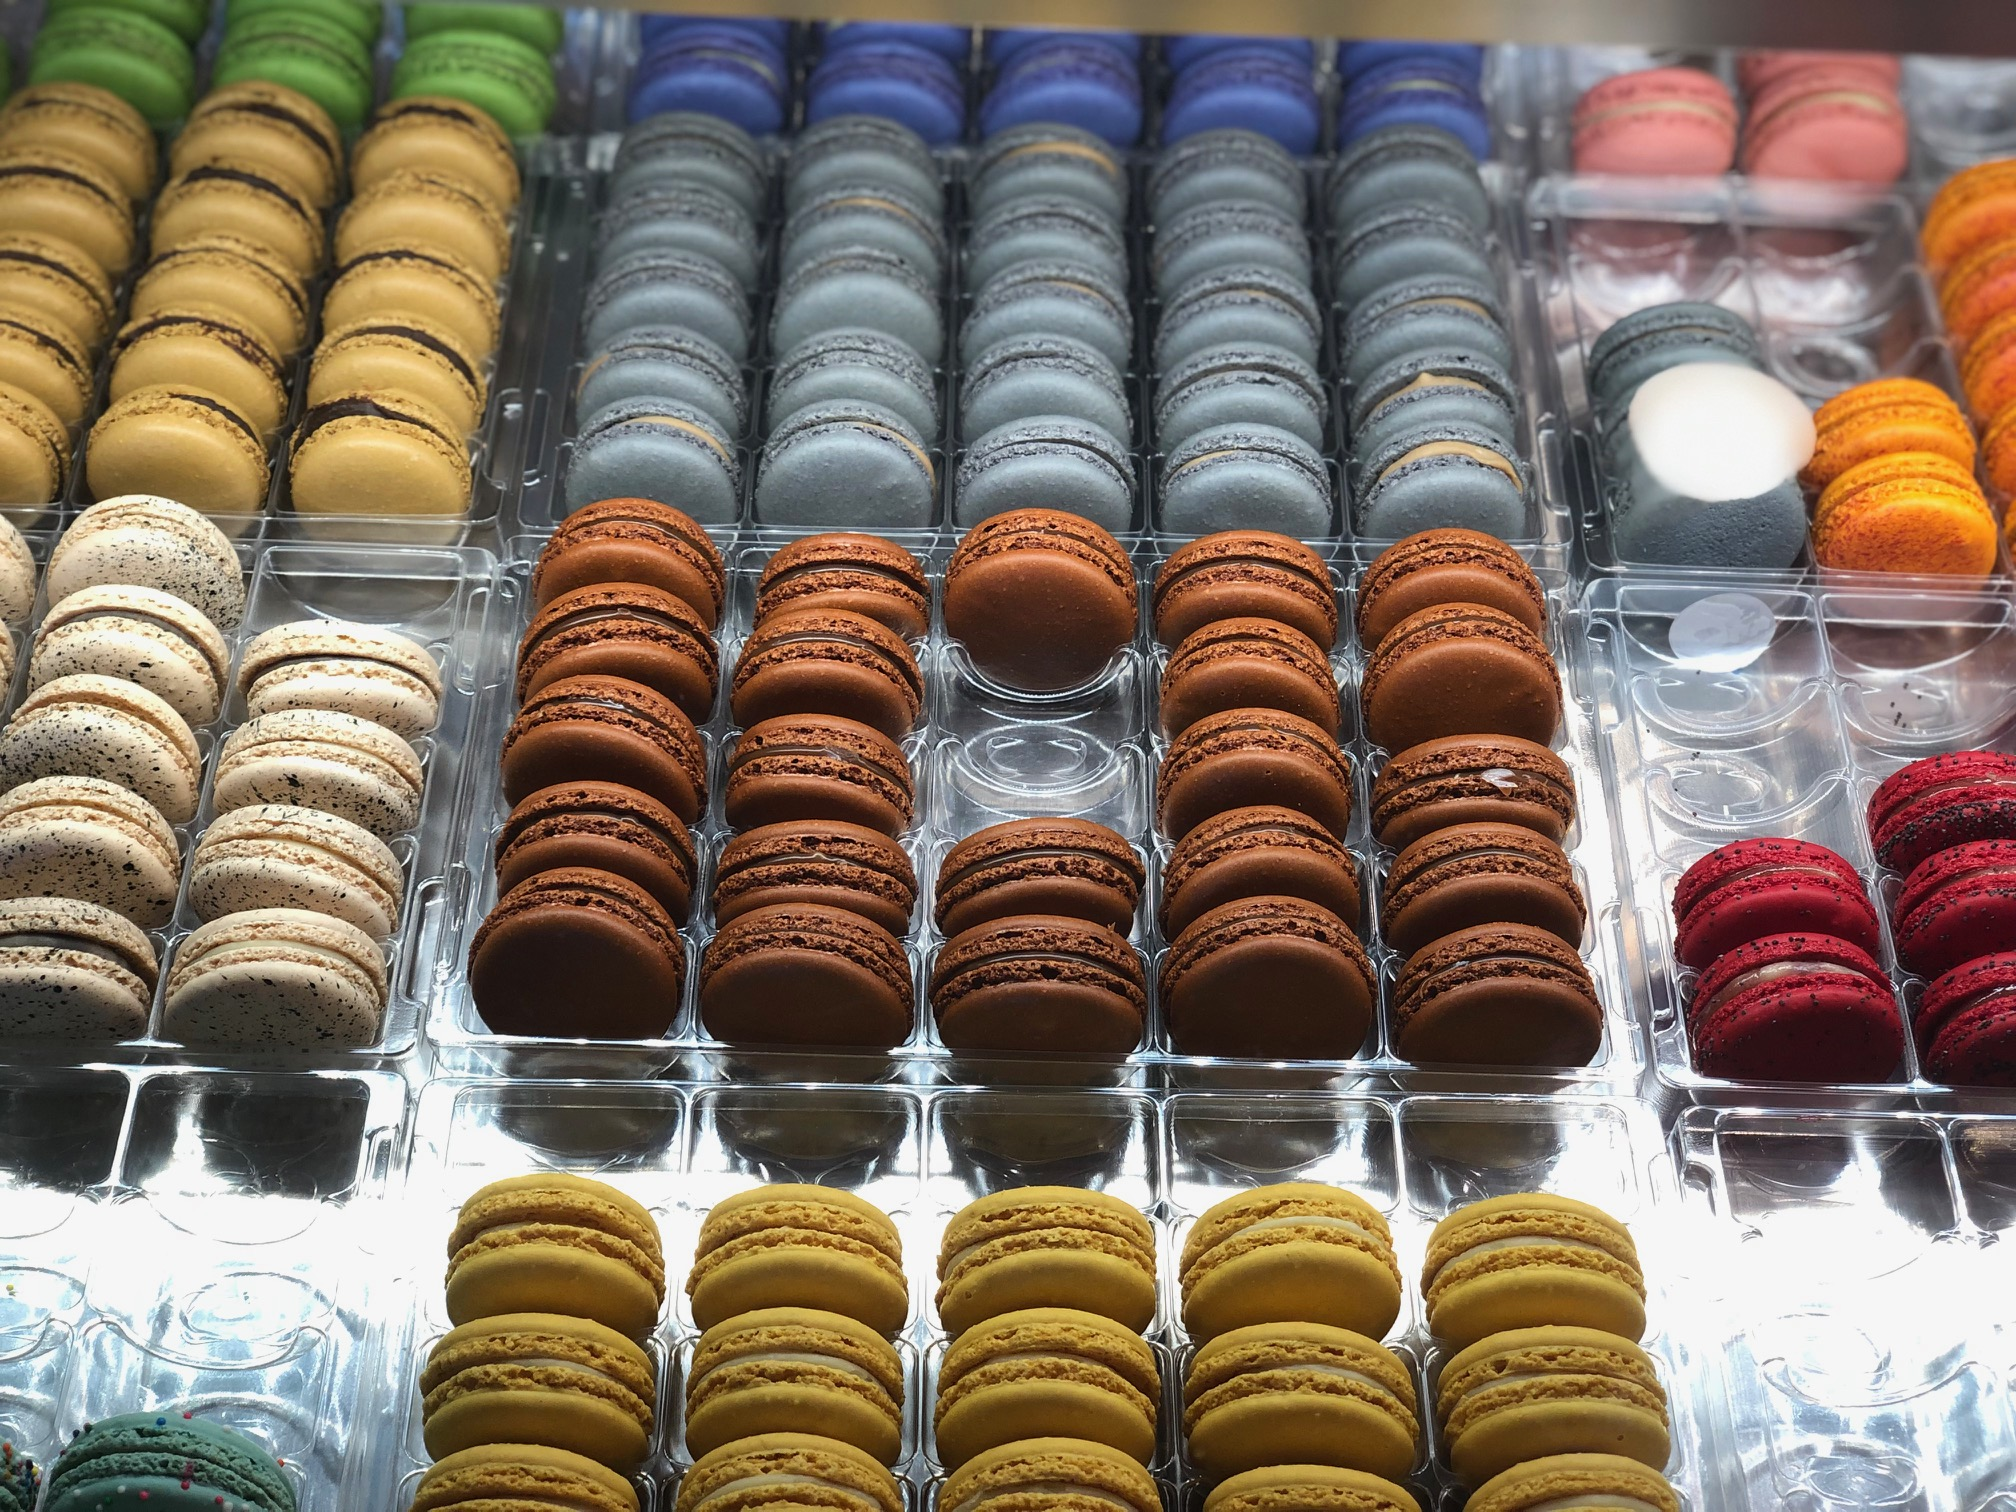 hand-made macarons in a wide selection of colors and flavors.